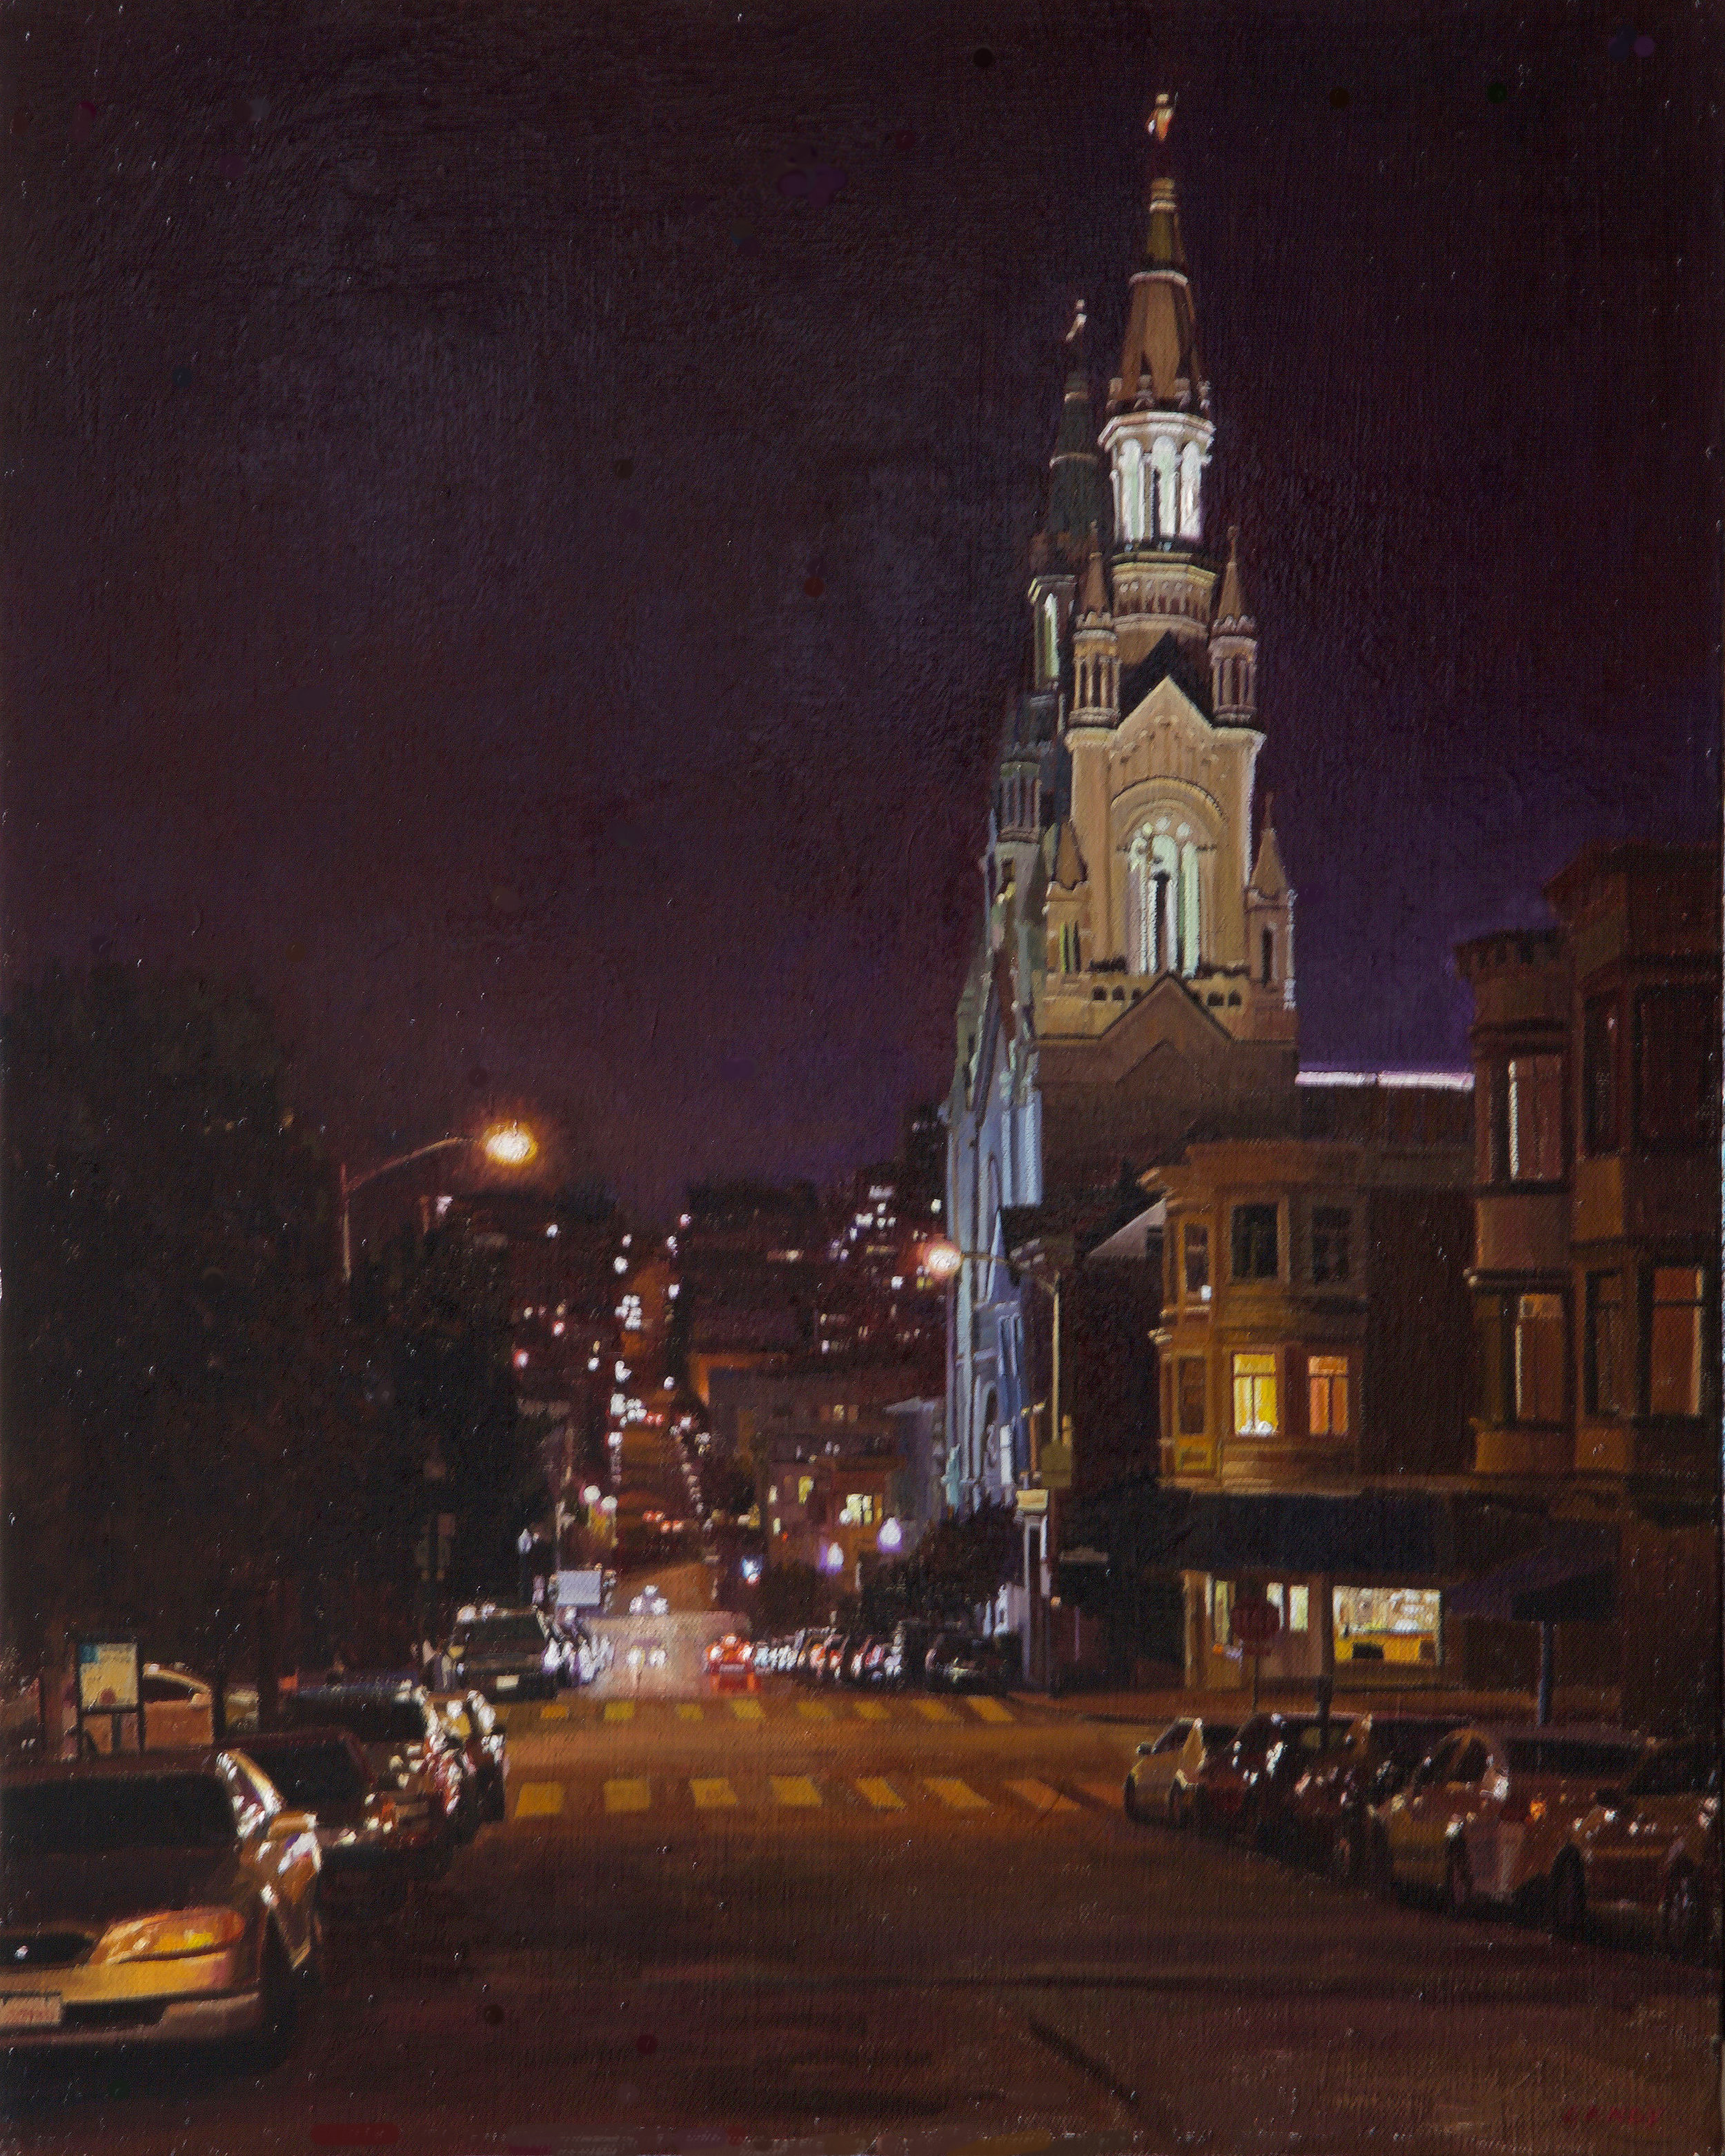 St. Peter and Paul's Church at Night